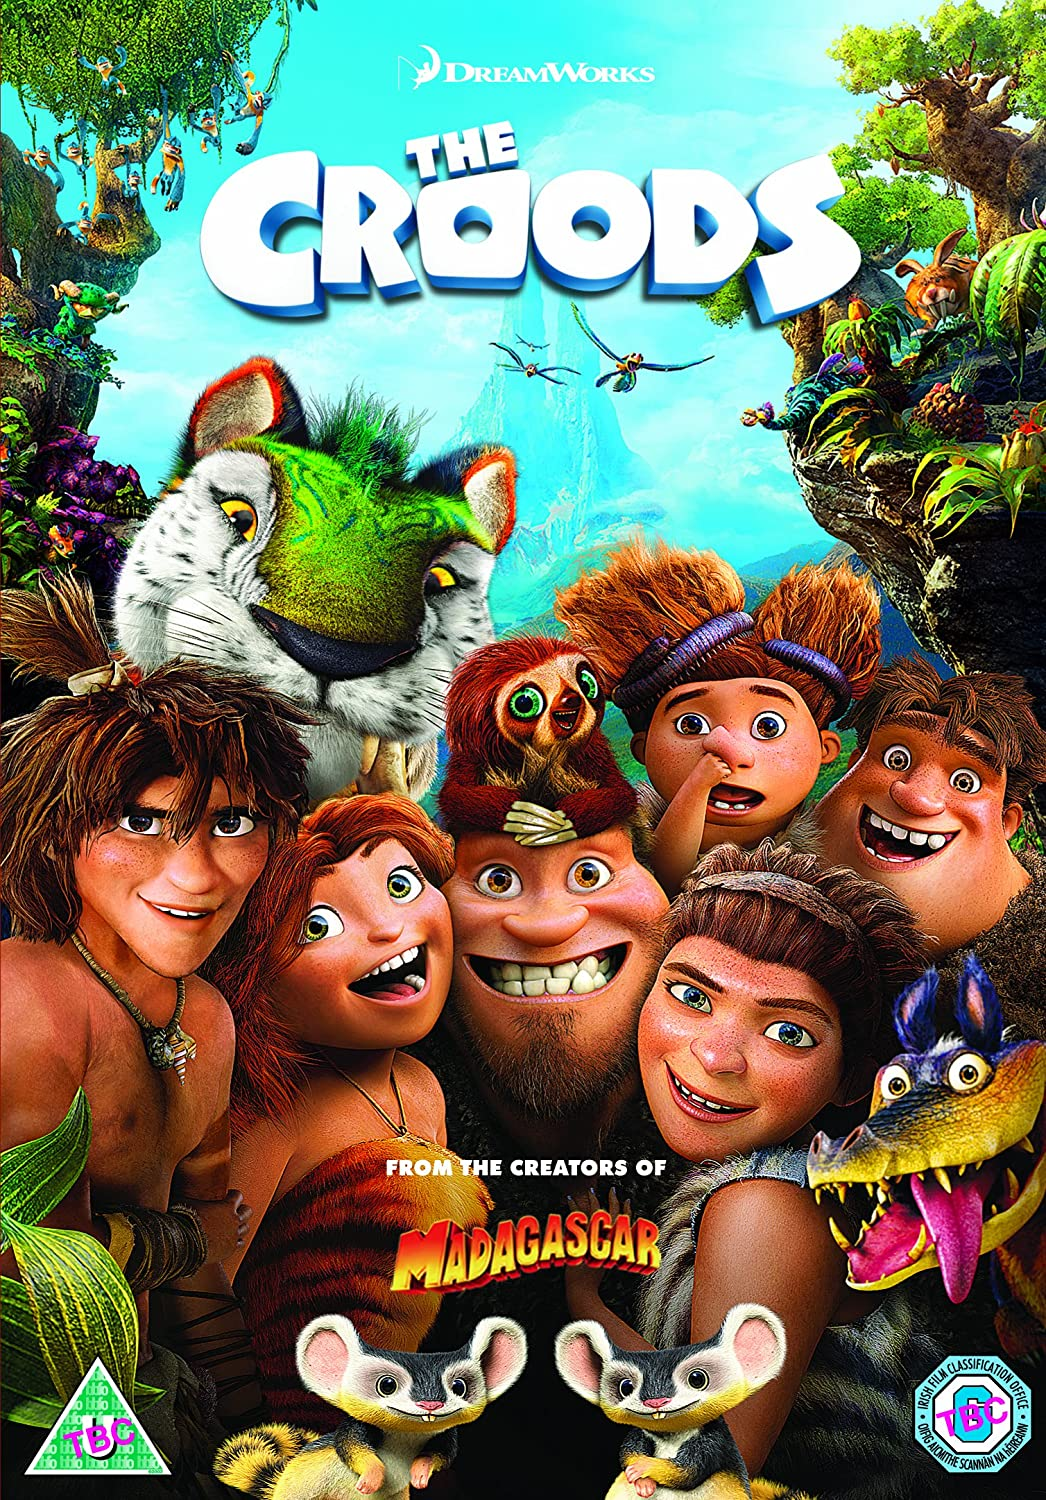 The Croods.DVD.jpg